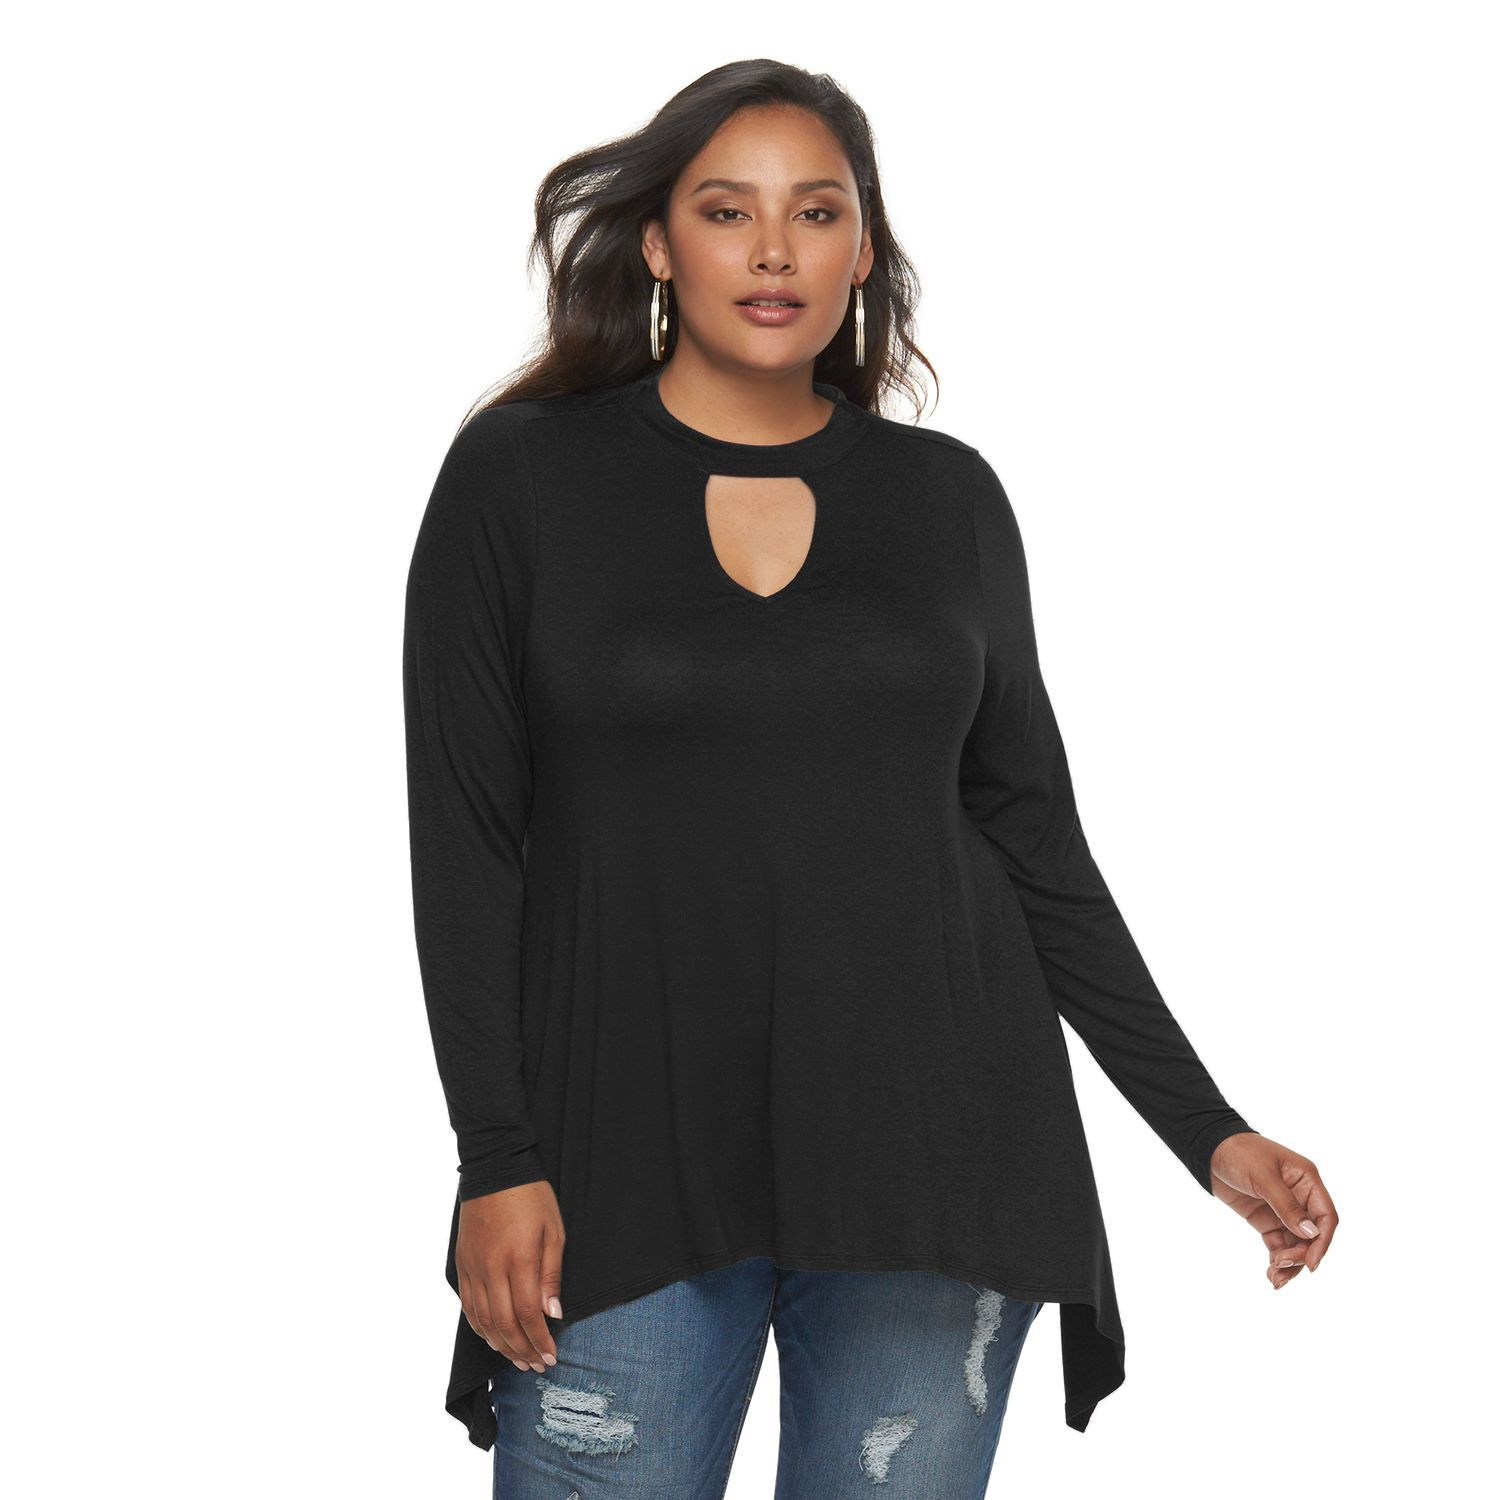 j lo plus size dresses jacket